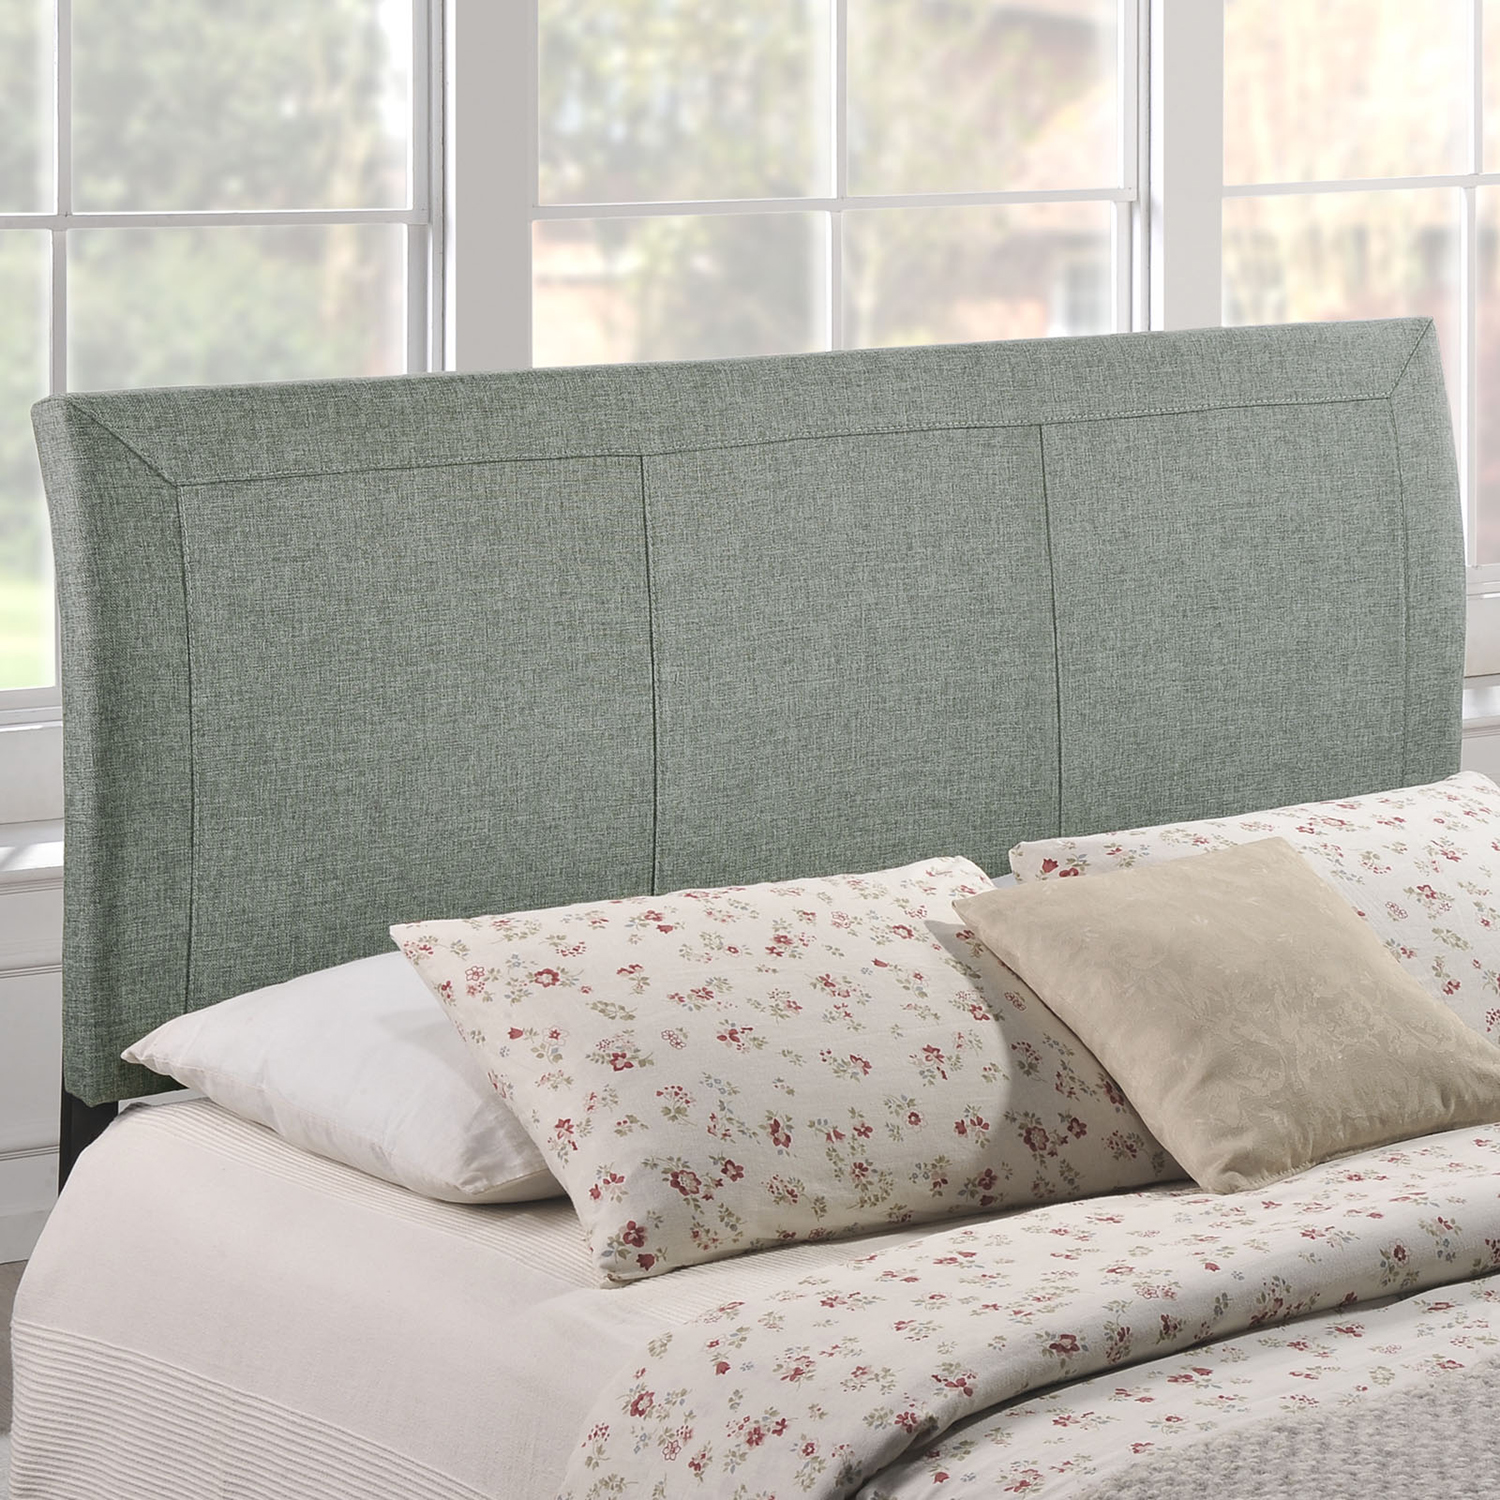 Isabella Upholstery Queen Headboard - Gray - EEI-MOD-5043-GRY